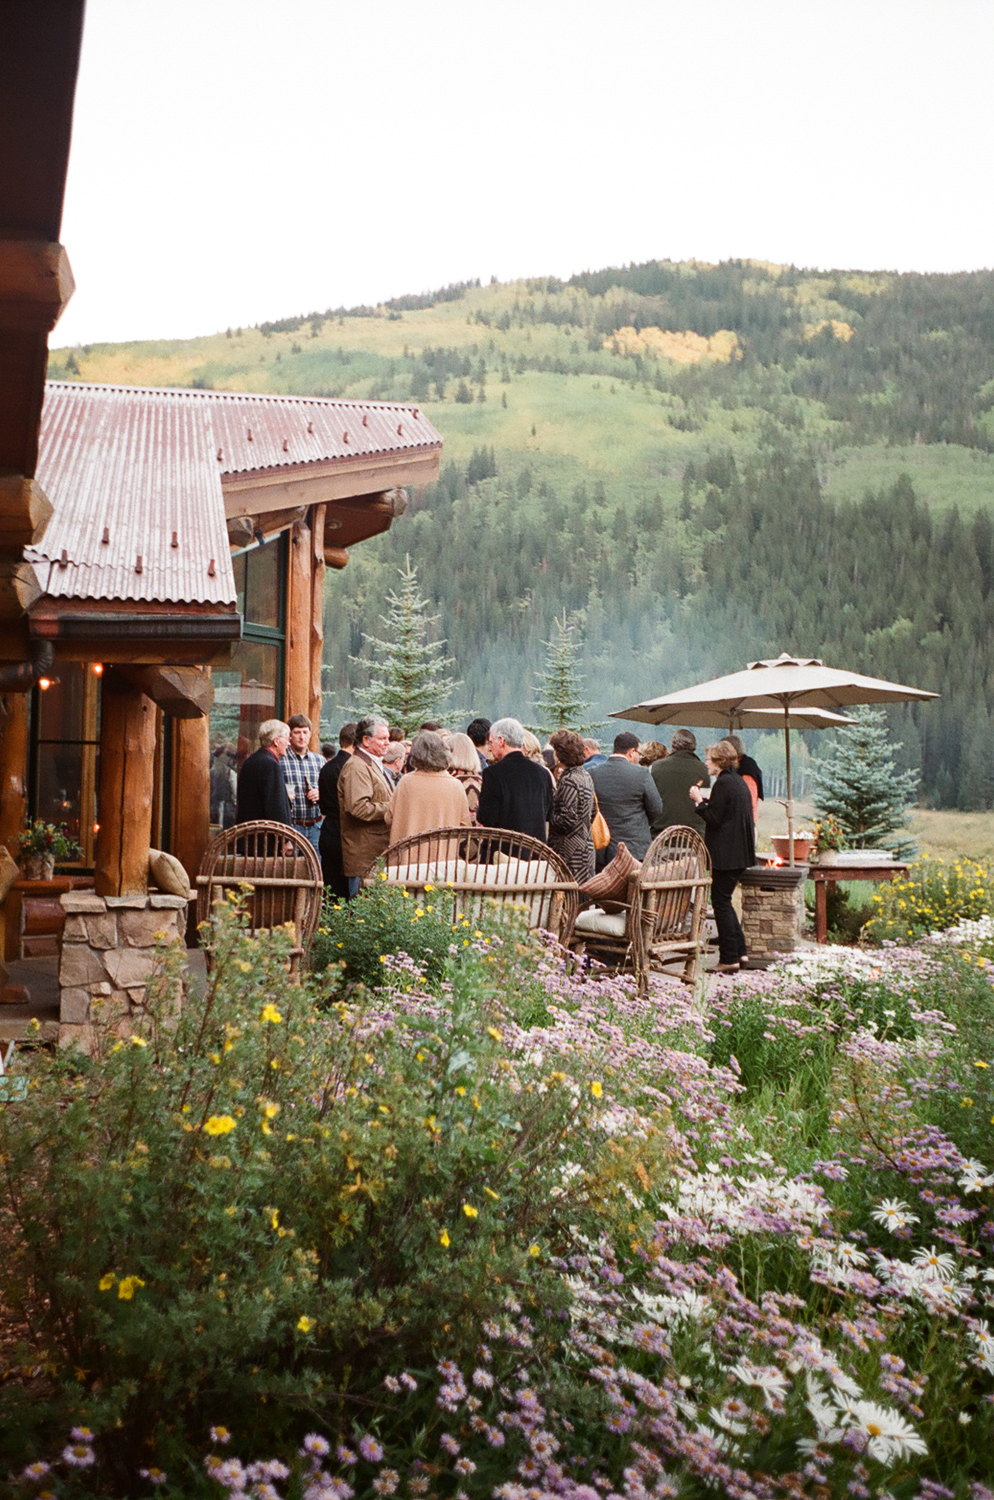 Welcome BBQ at Pine Creek Cookhouse